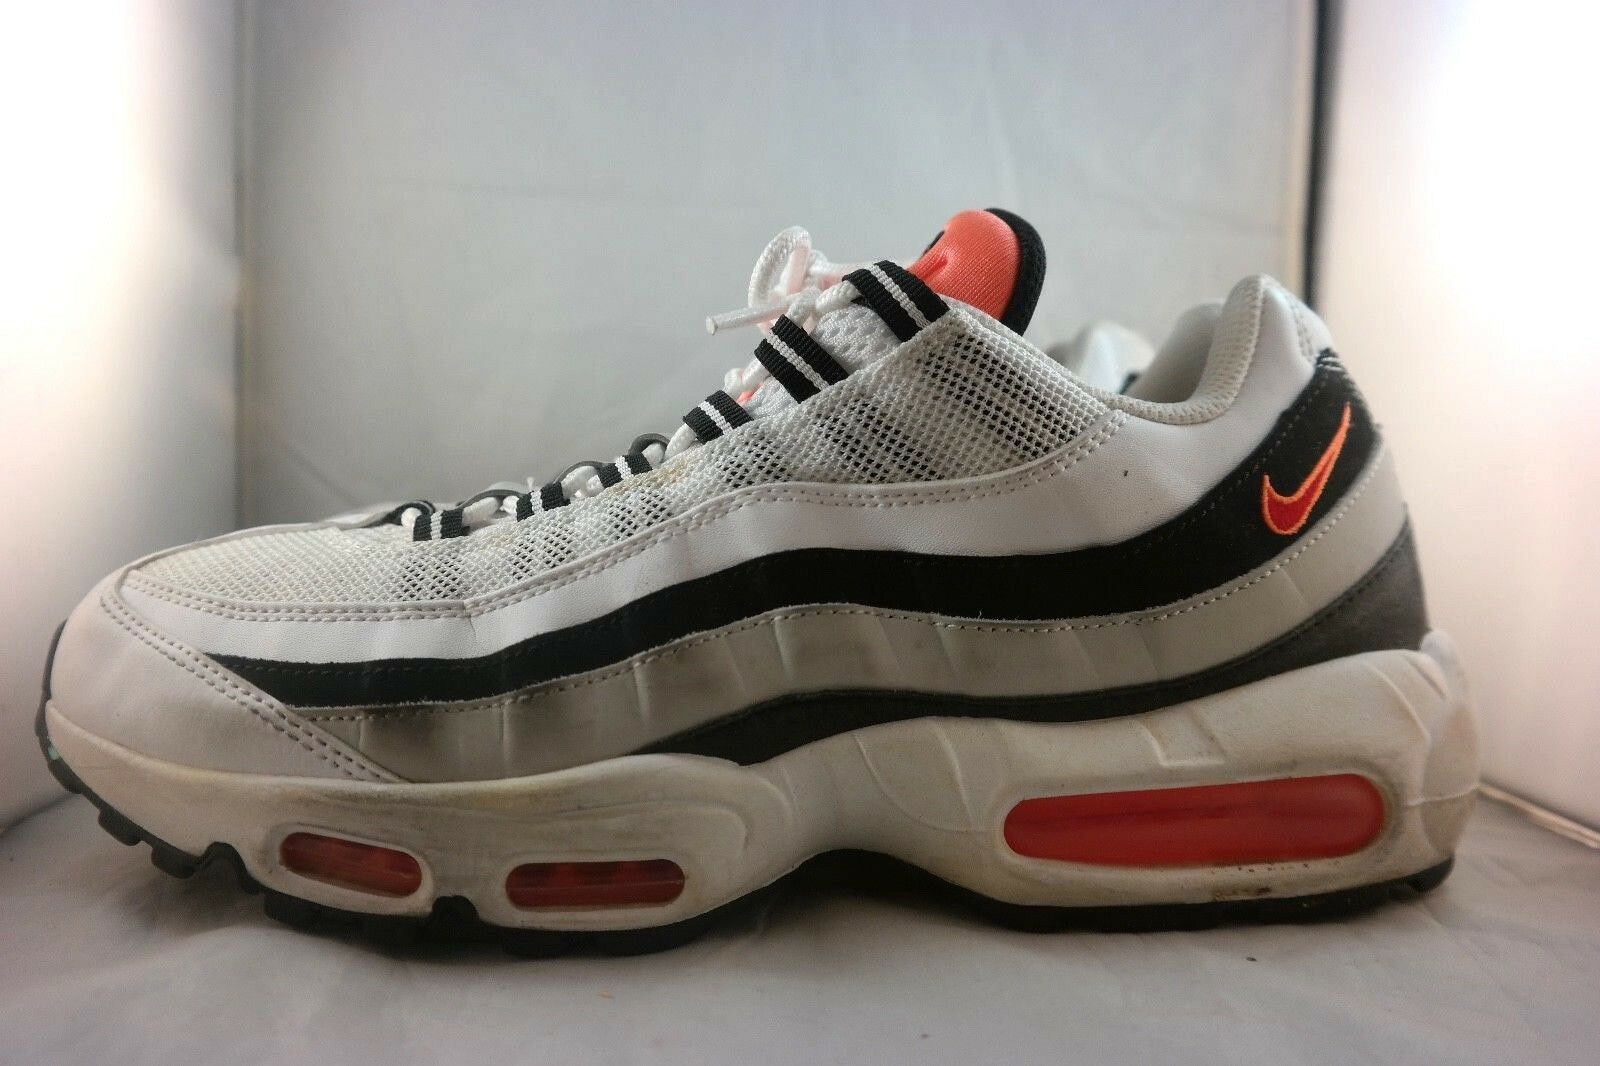 Nike Air Max 95 Men's Running Black/white/Orange 609048-086 SZ US 10.5